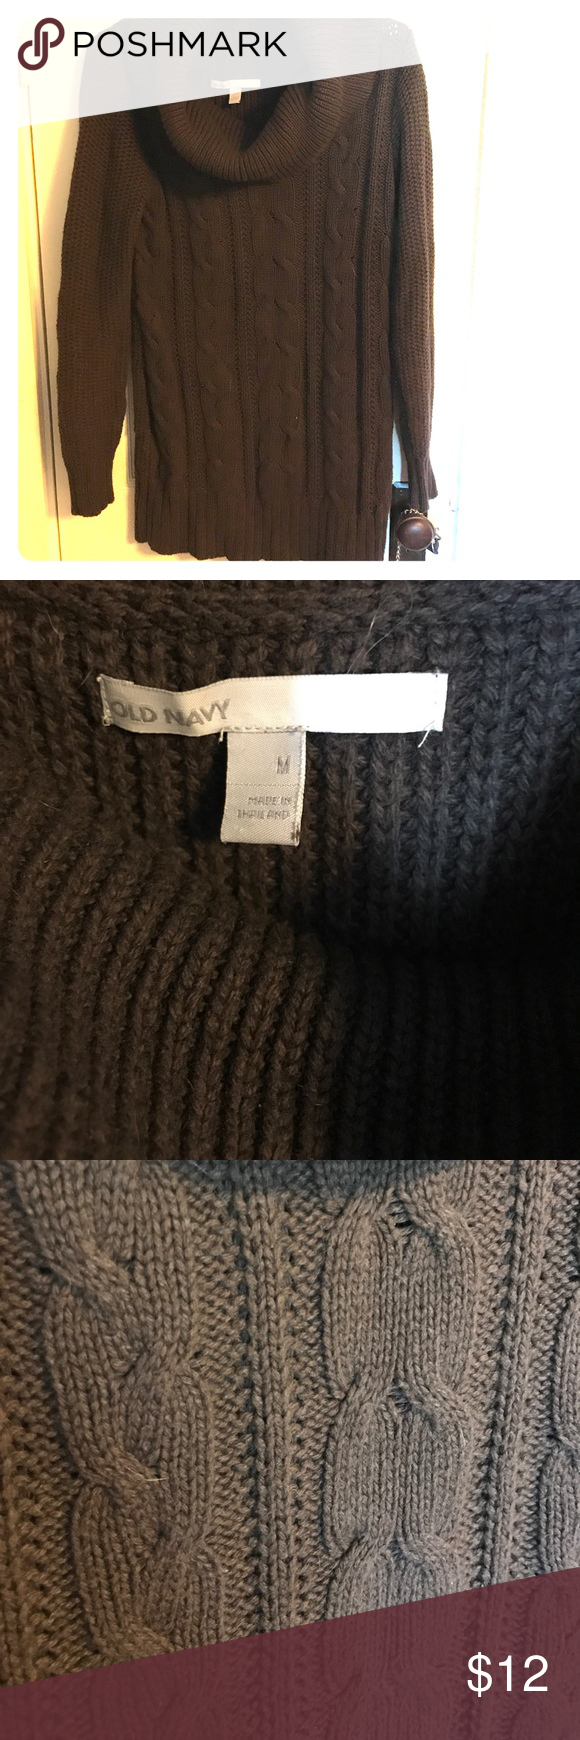 Old navy cowl neck cable knit sweater | Cable knit sweaters, Cowl ...